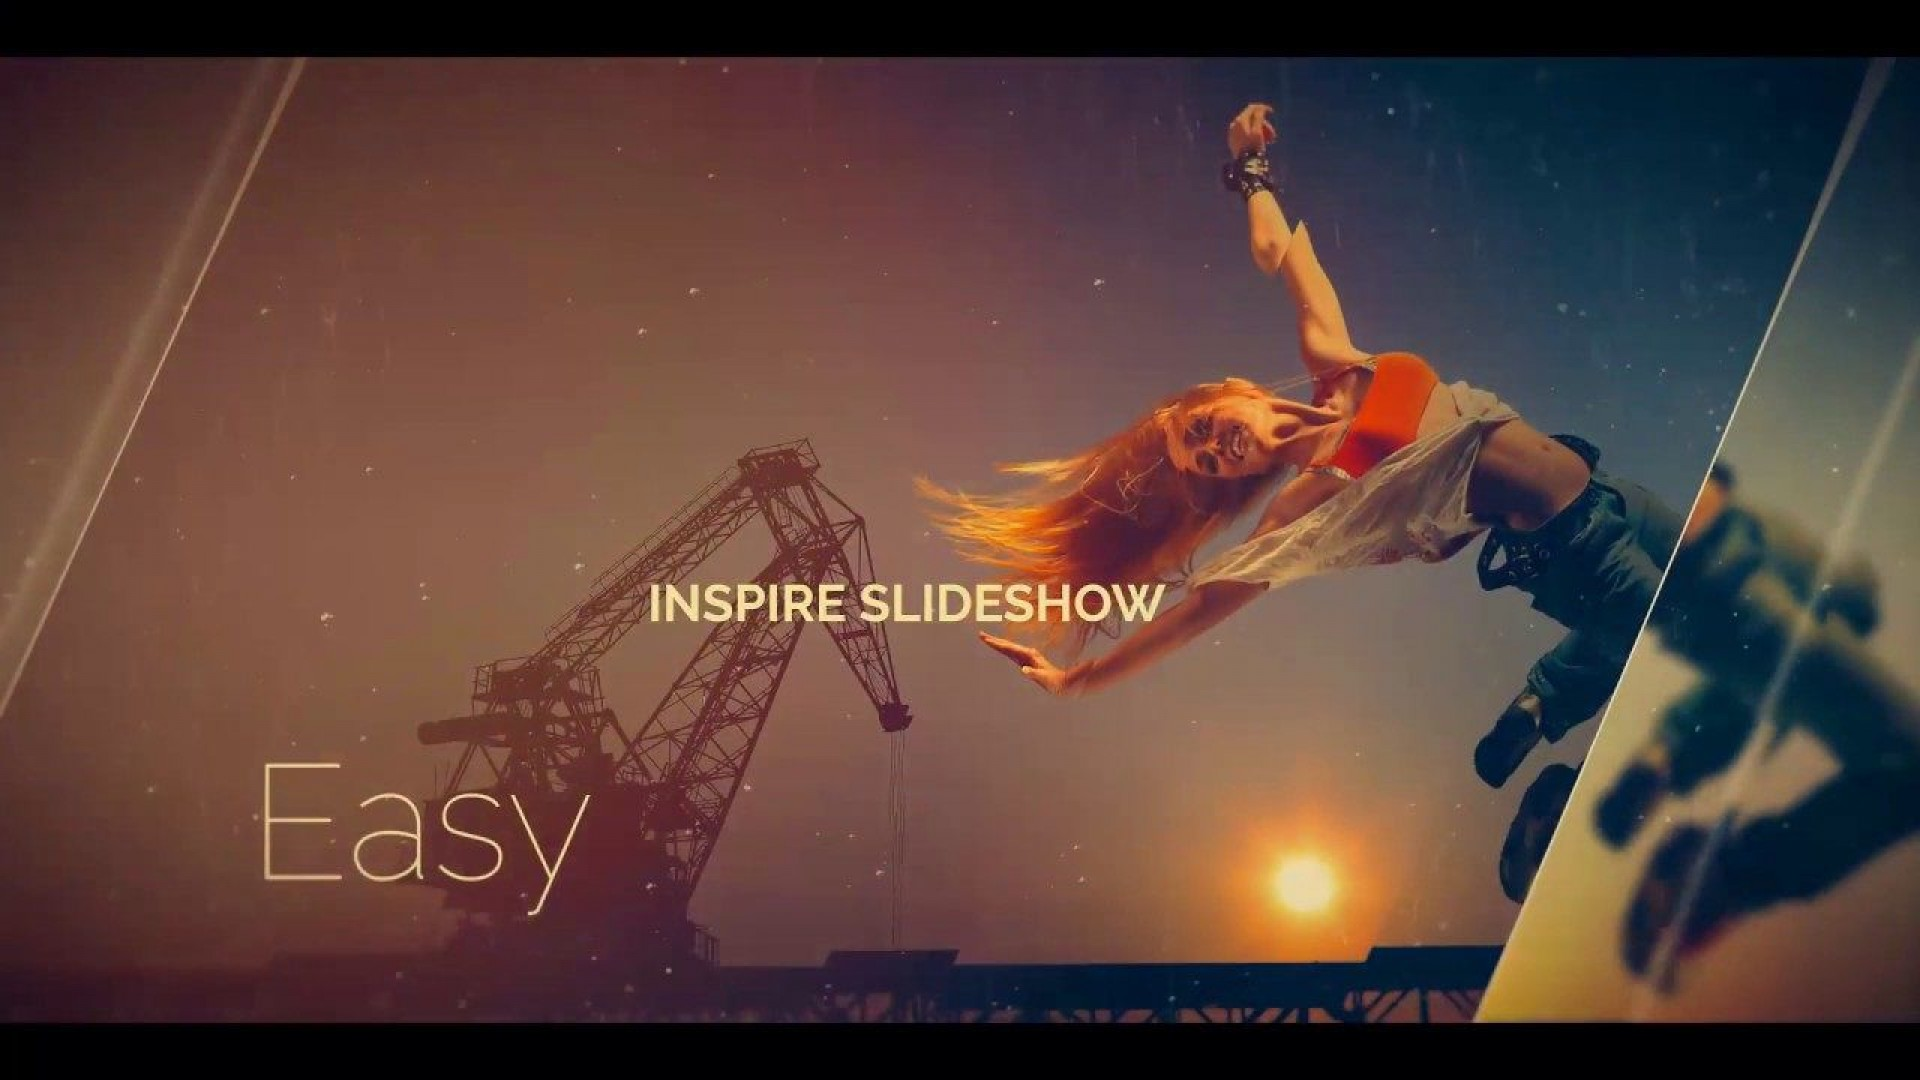 002 Unusual Videohive After Effect Template Sample  Templates Envato Map Kit - Free Download1920